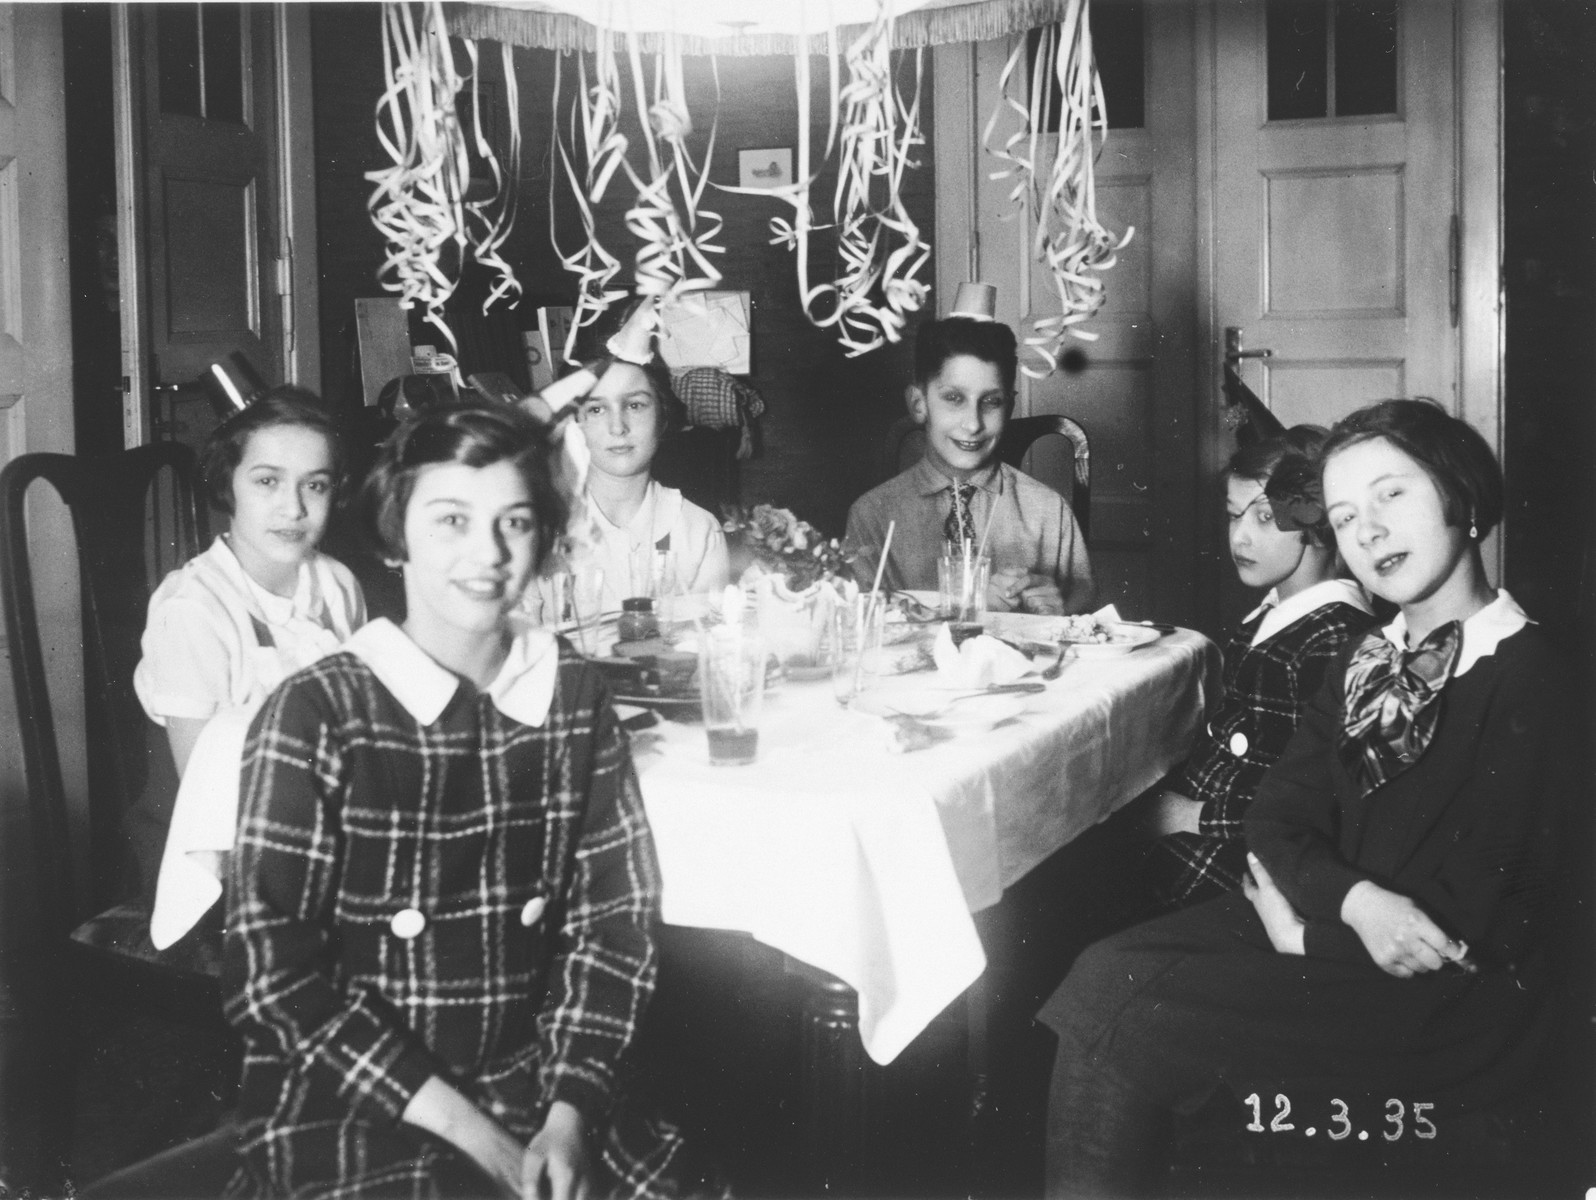 Young German-Jewish teenagers wearing party hats gather for a birthday party in a room decorated with paper streamers.  Those pictured include the birthday girl, Hannelore Kittle and Ruth Cohn (seated on left).